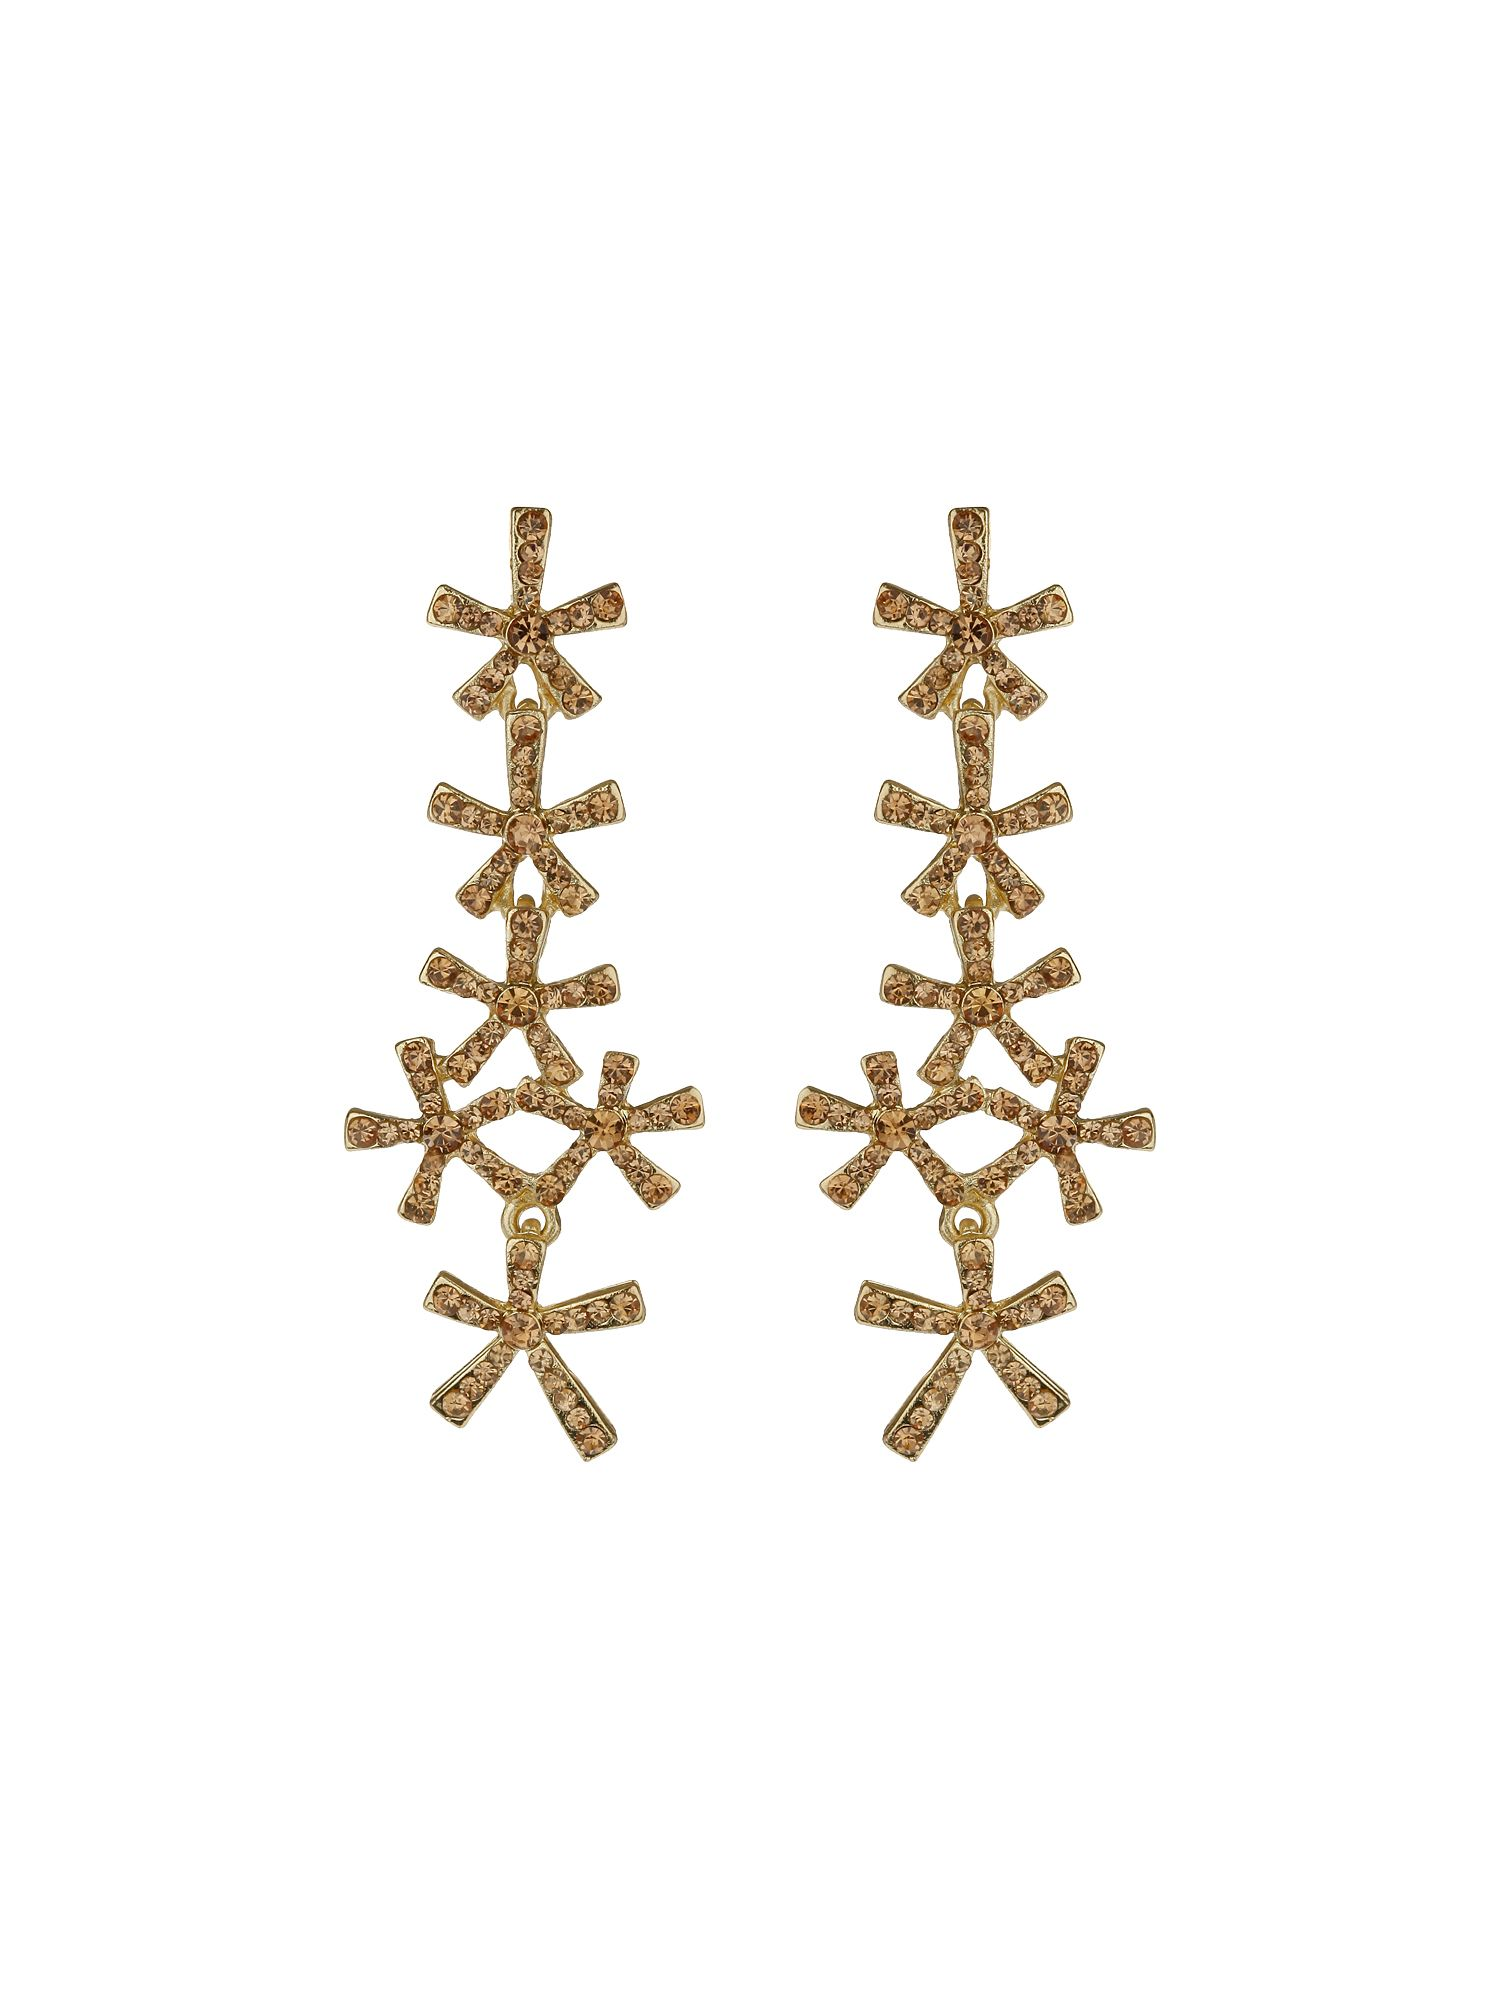 Twist cross earrings